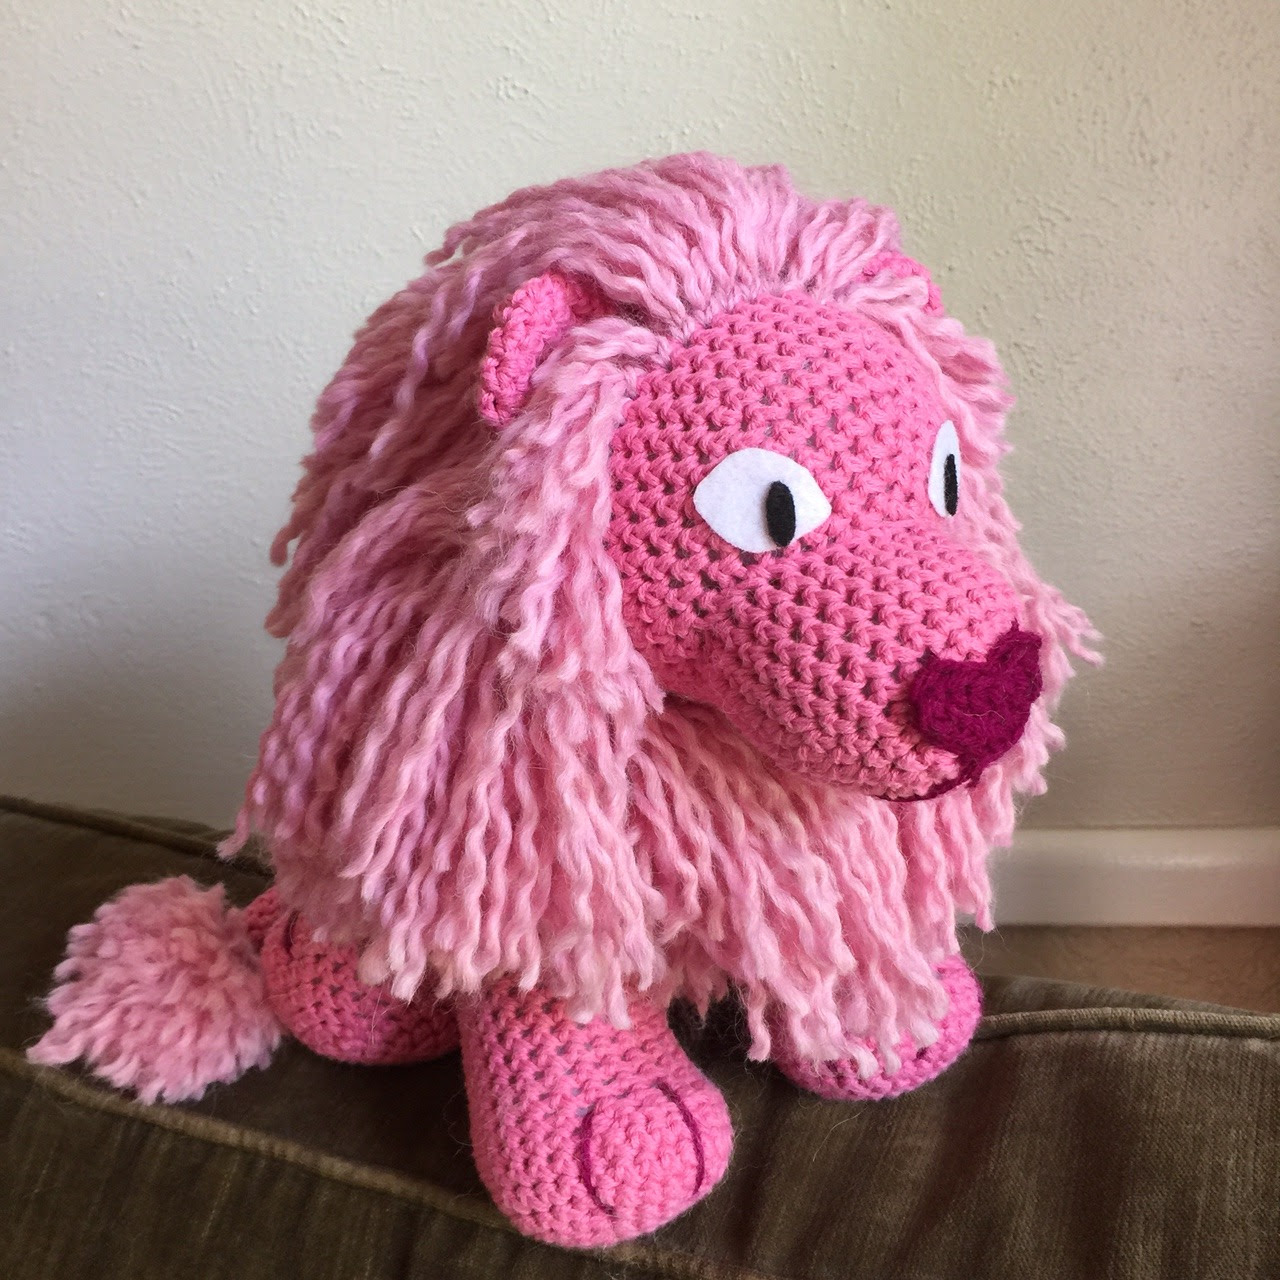 Today I finished my crochet plushie Lion from Steven Universe. I took a lot of time trying to make him look as on model as possible from the show. I am super happy with how he turned out. A full post...